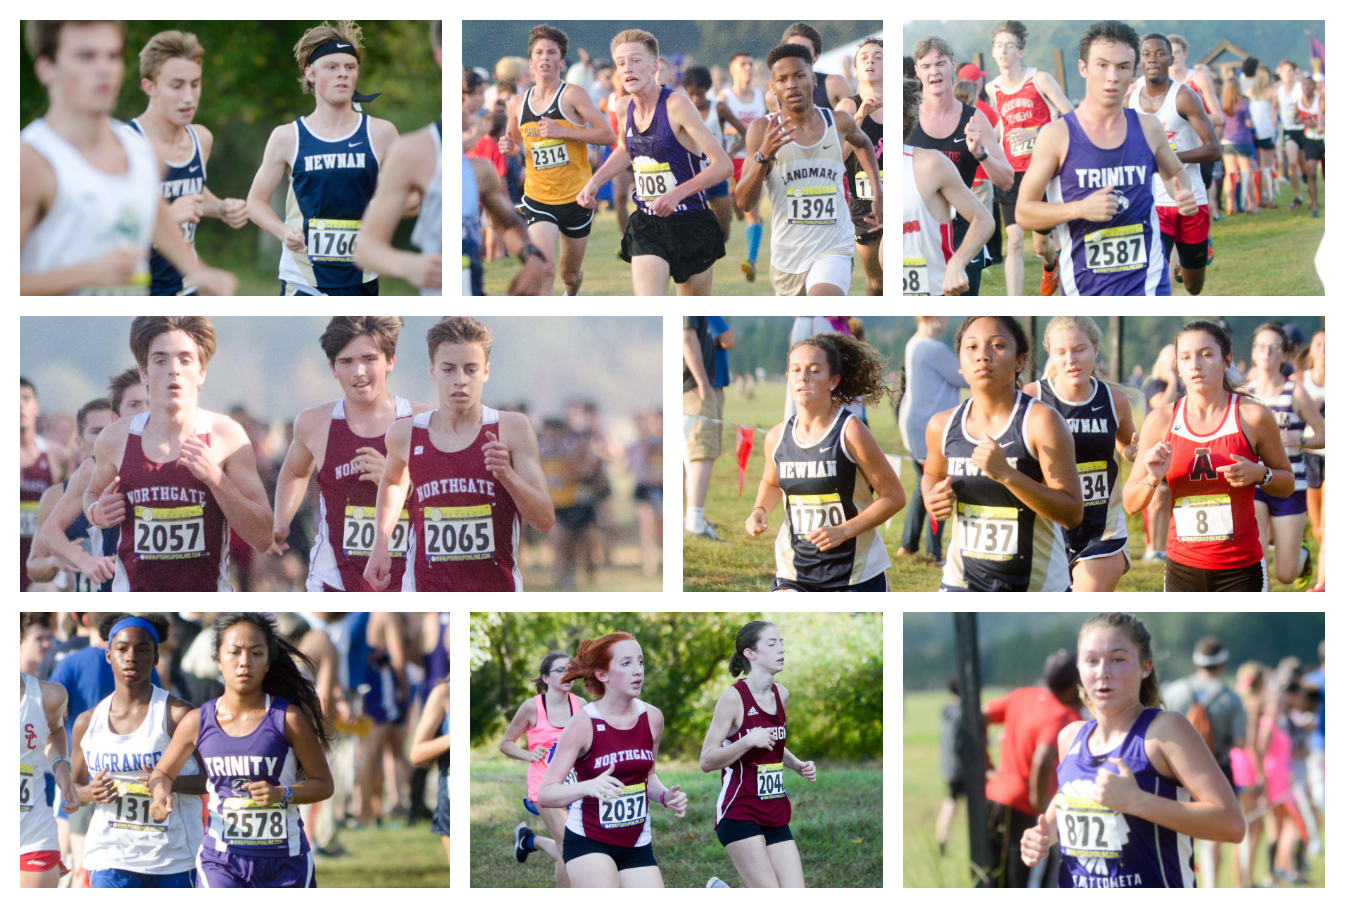 East Coweta, Newnan, Northgate and Trinity competed at the annual Asics Invitational